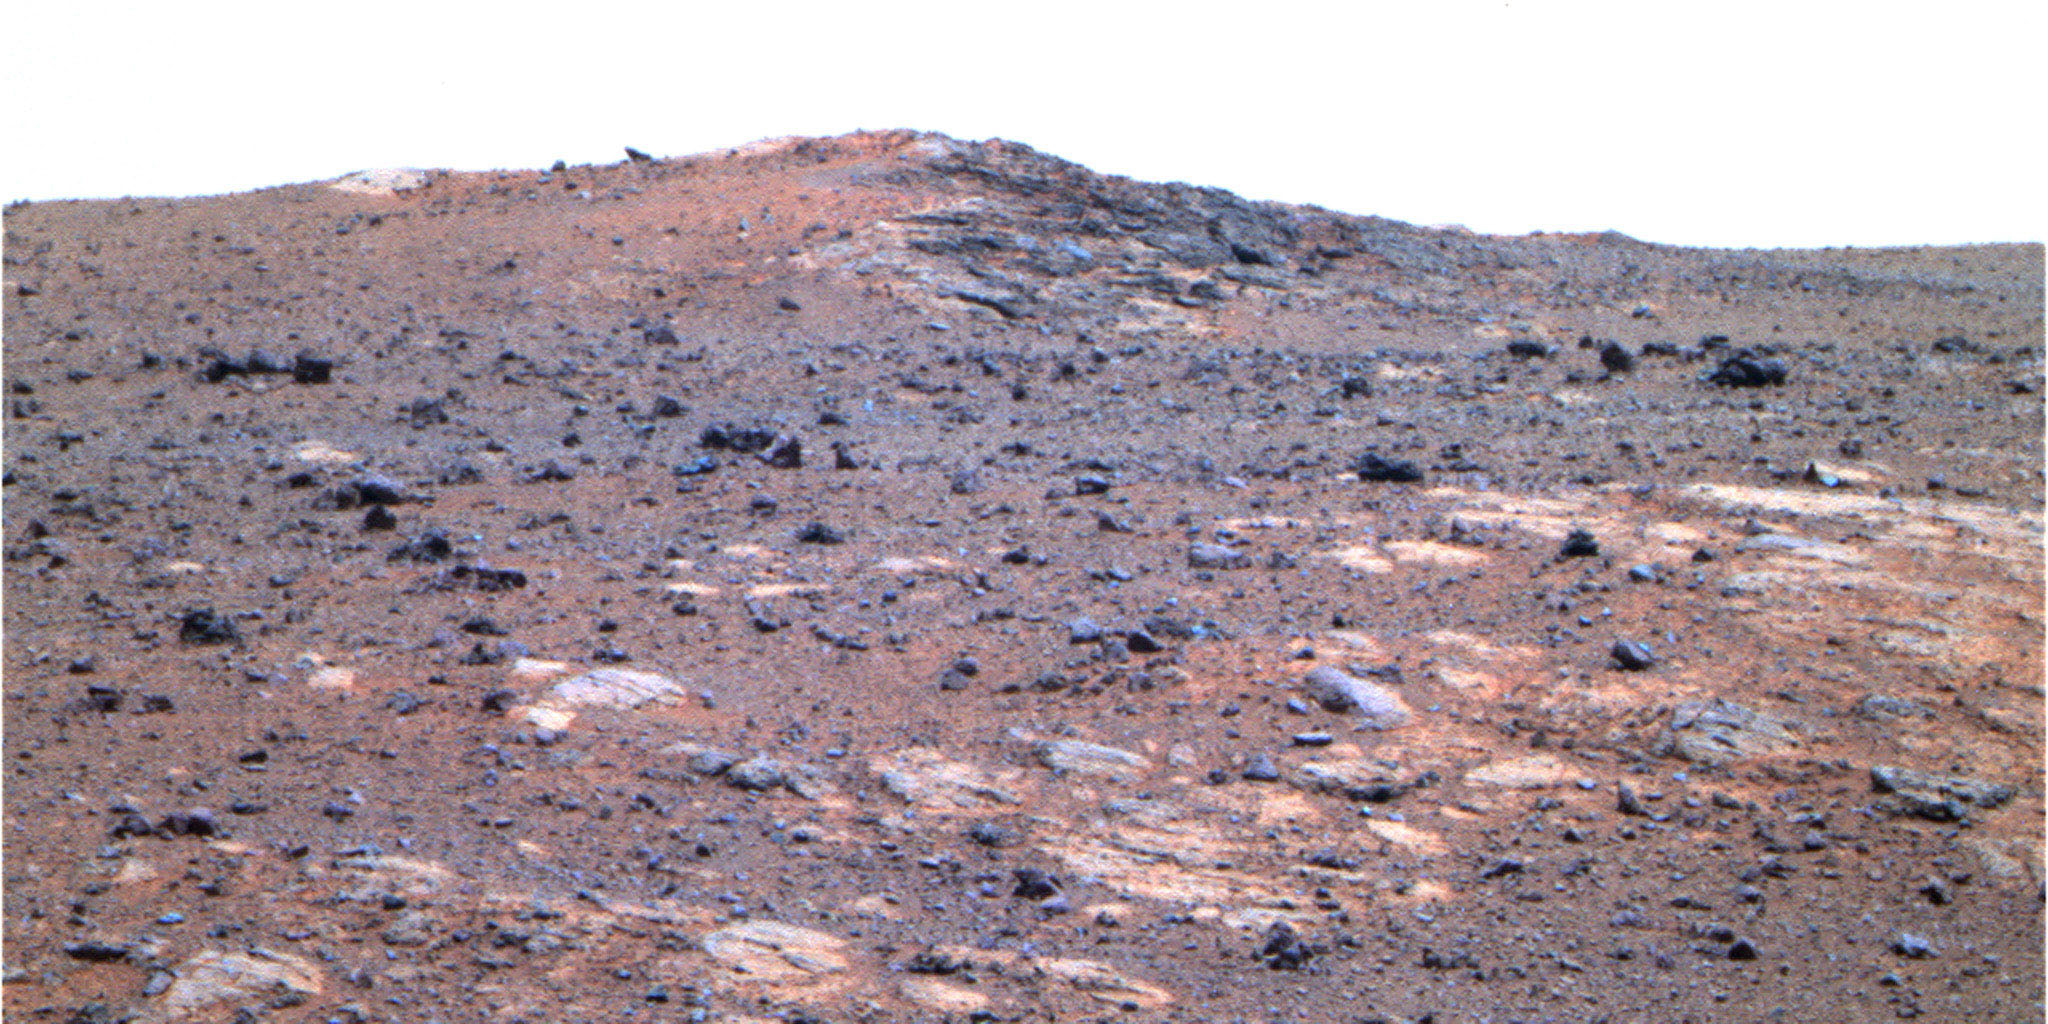 The feature informally named 'Shoemaker Ridge' in the 'Cape York' segment of the western rim of Endeavour Crater includes outcrops that are likely impact breccias as seen by NASA's rover Opportunity.